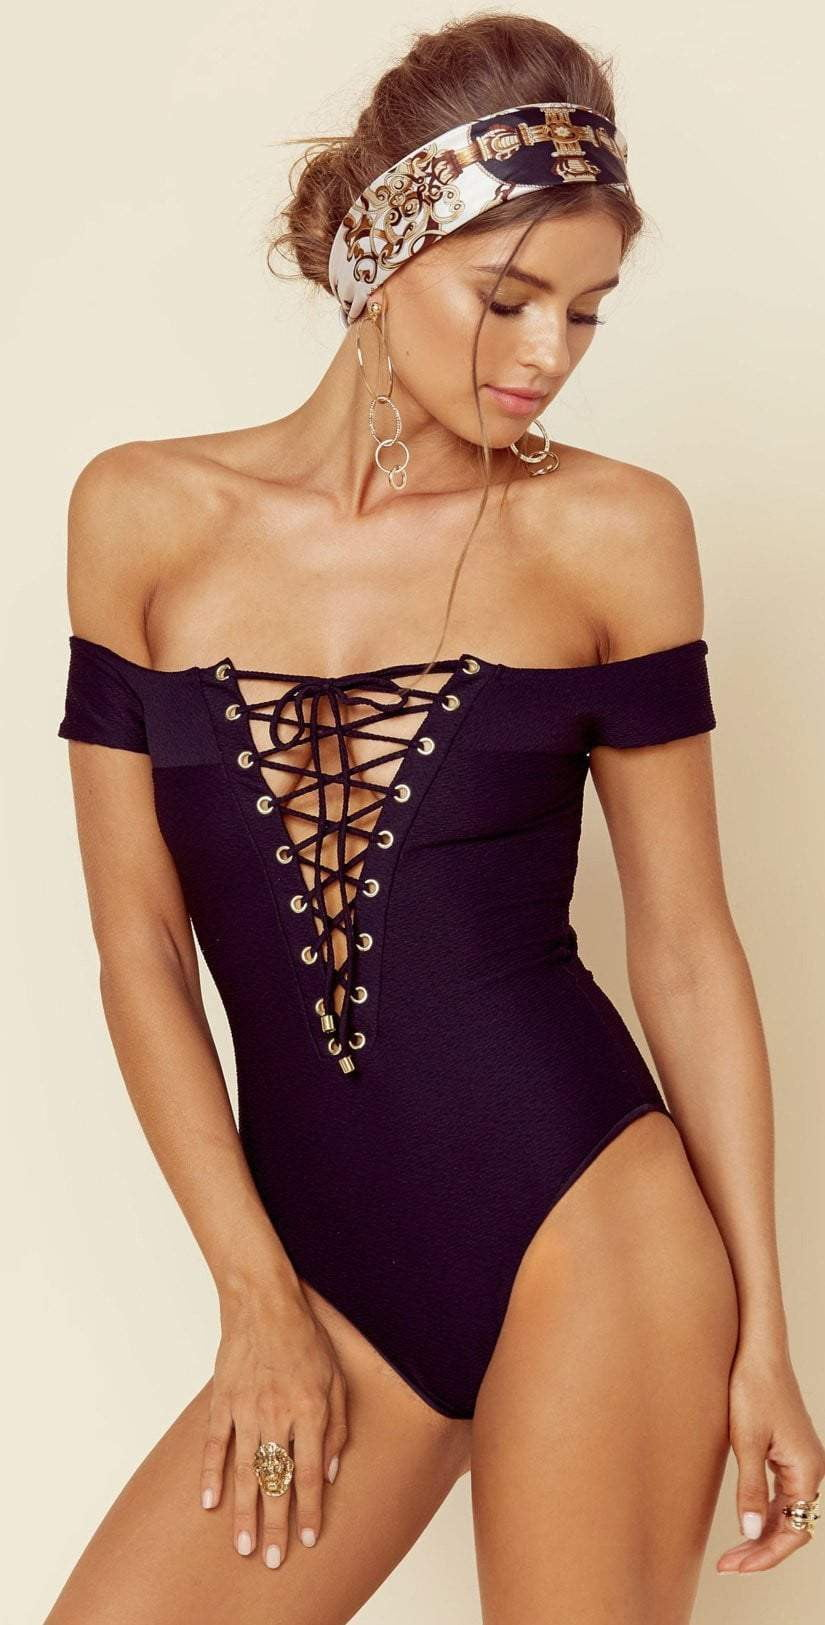 e3378c52124 Blue Life Off The Shoulder One Piece in Black 388-9466 BLK – South ...